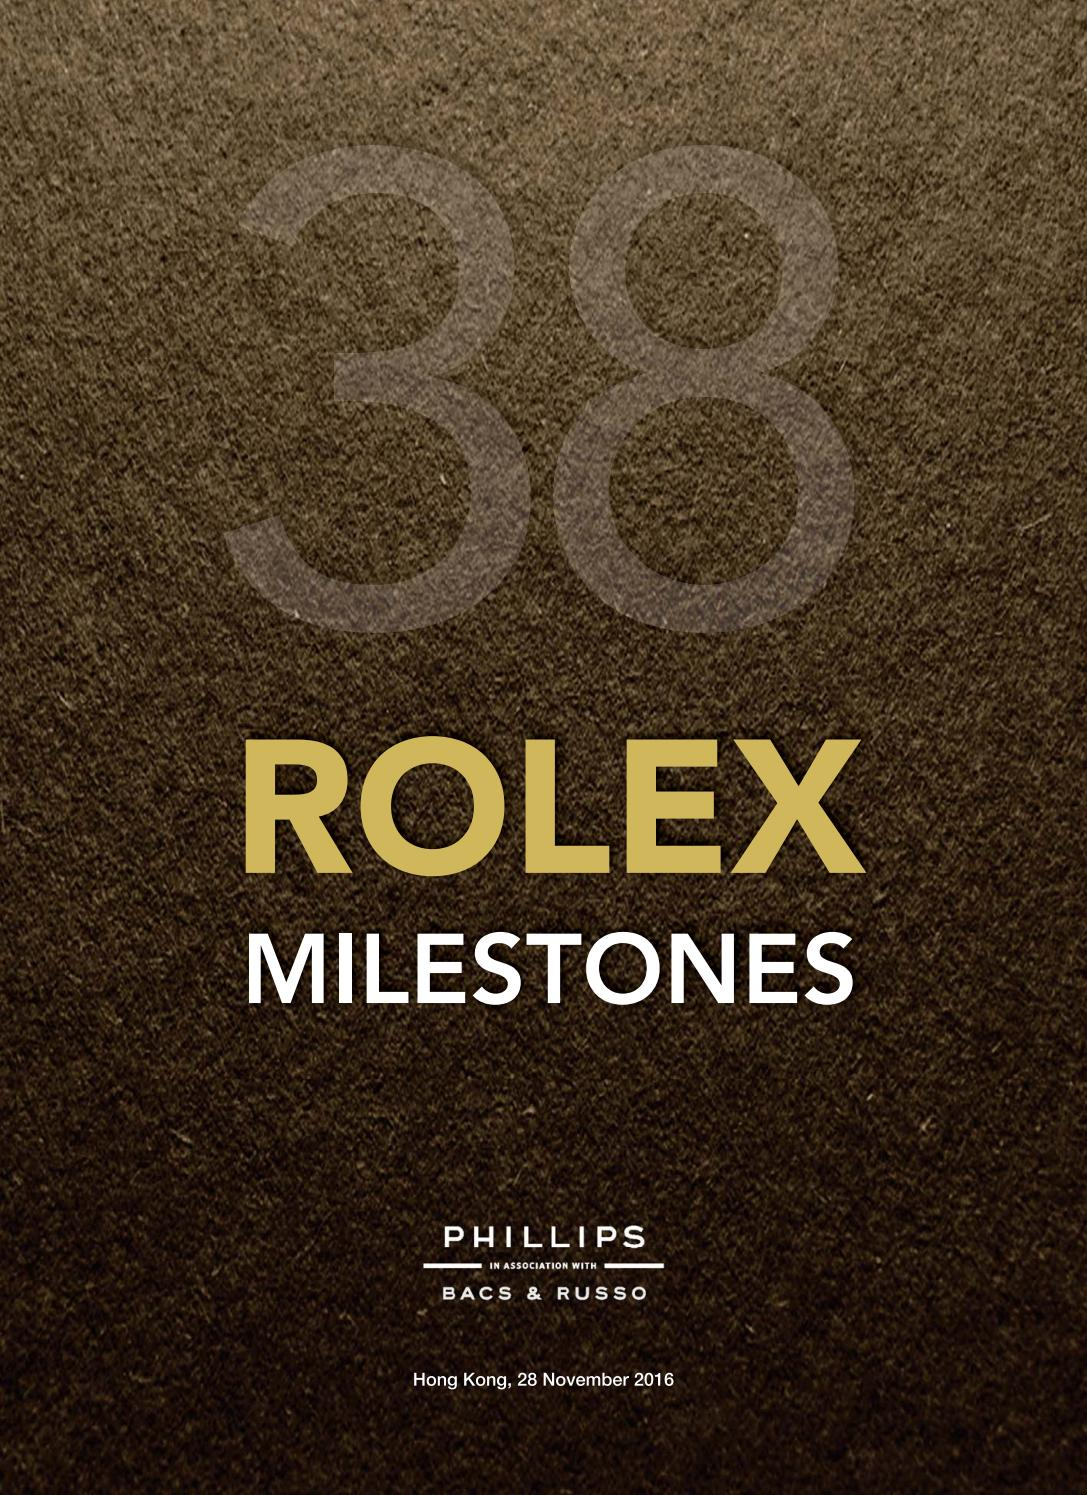 Rolex milestones 38 legendary watches that shaped history rolex milestones 38 legendary watches that shaped history catalogue by phillips issuu biocorpaavc Choice Image